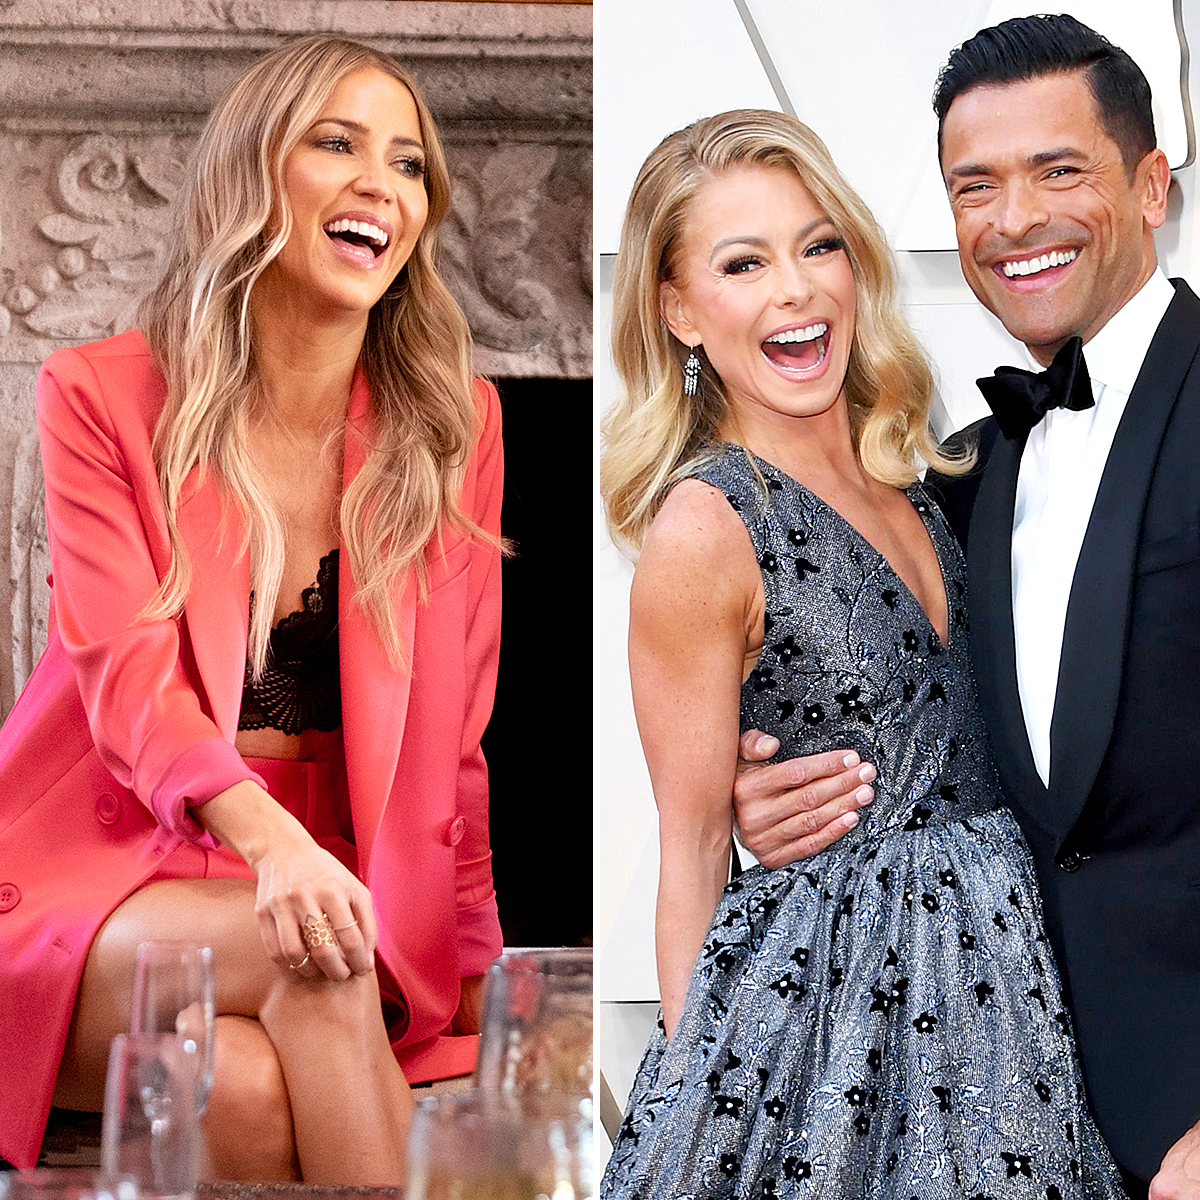 Kaitlyn-Bristowe-Kelly-Ripa-Meeting-Mark-Consuelos-Soap-Opera-Bachelor